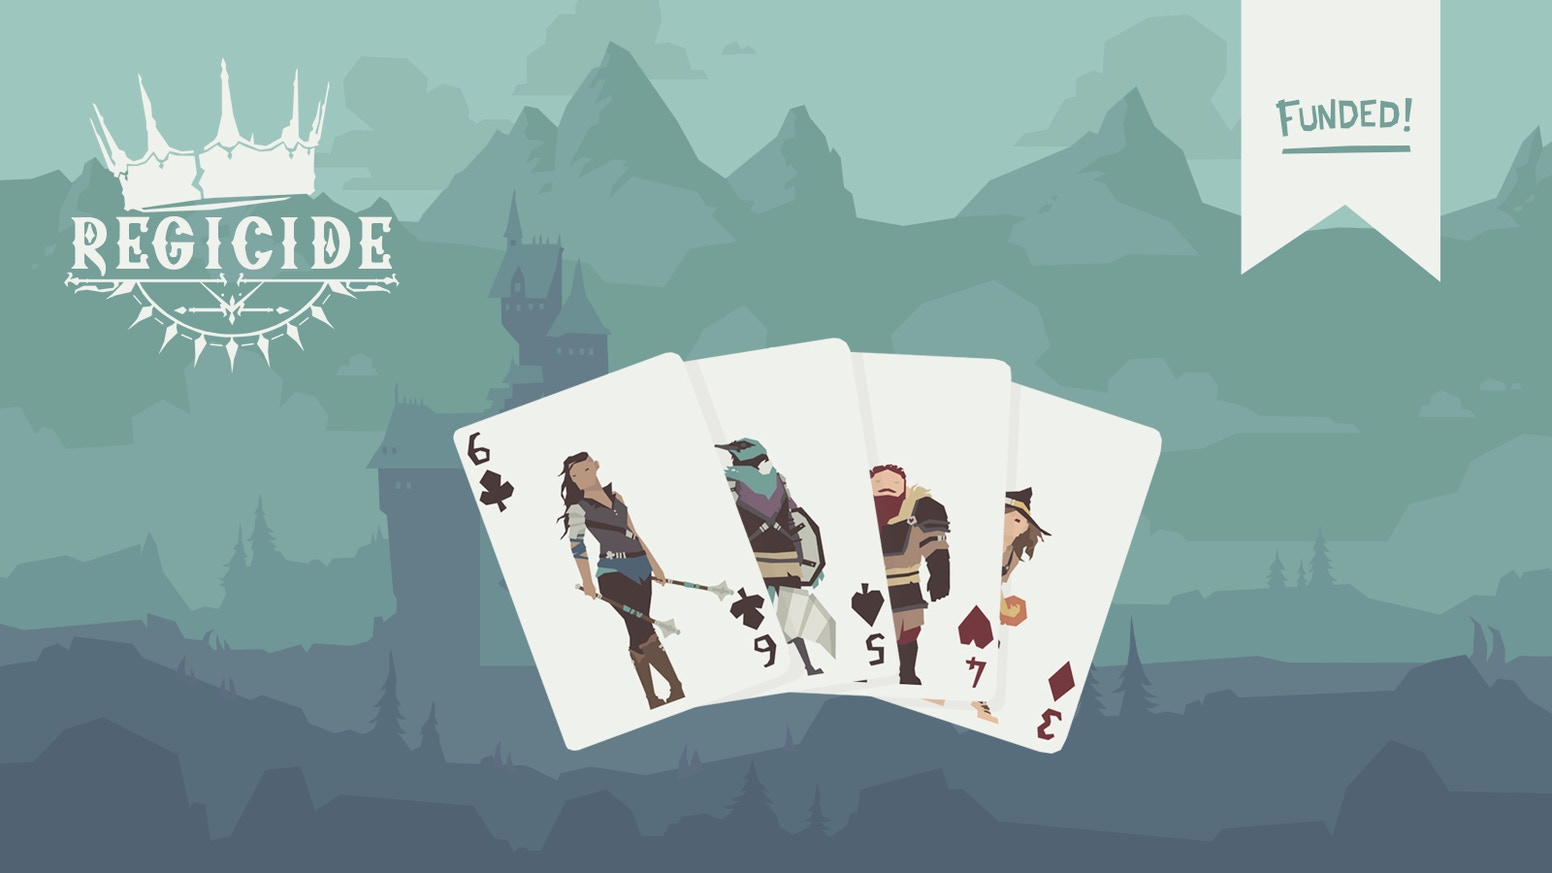 Regicide is a cooperative, fantasy card game for 1 to 4 players, with a deck of playing cards uniquely illustrated by Sketchgoblin.